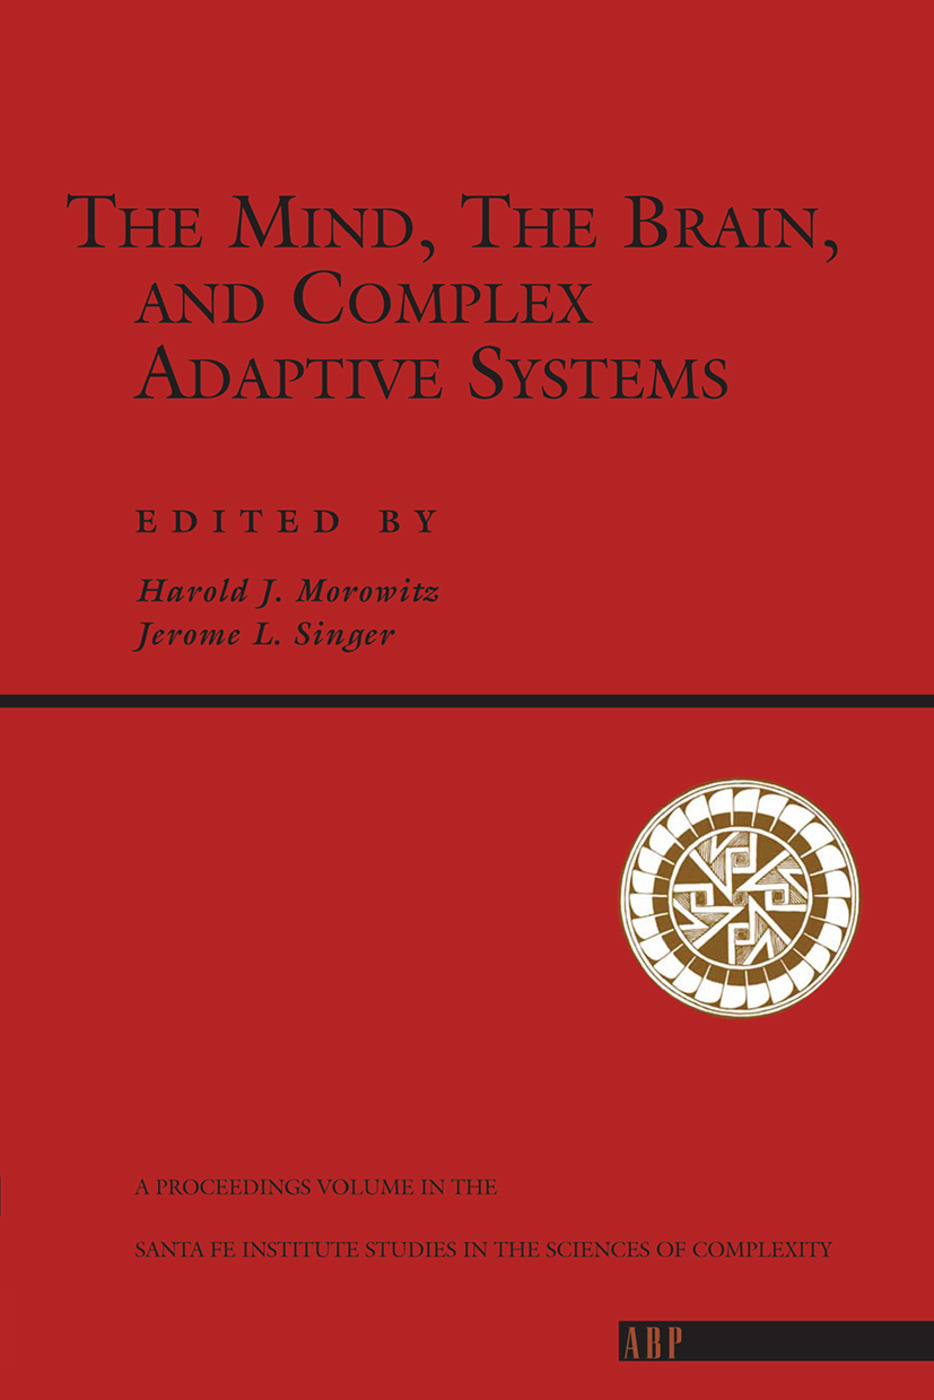 The Mind, The Brain And Complex Adaptive Systems